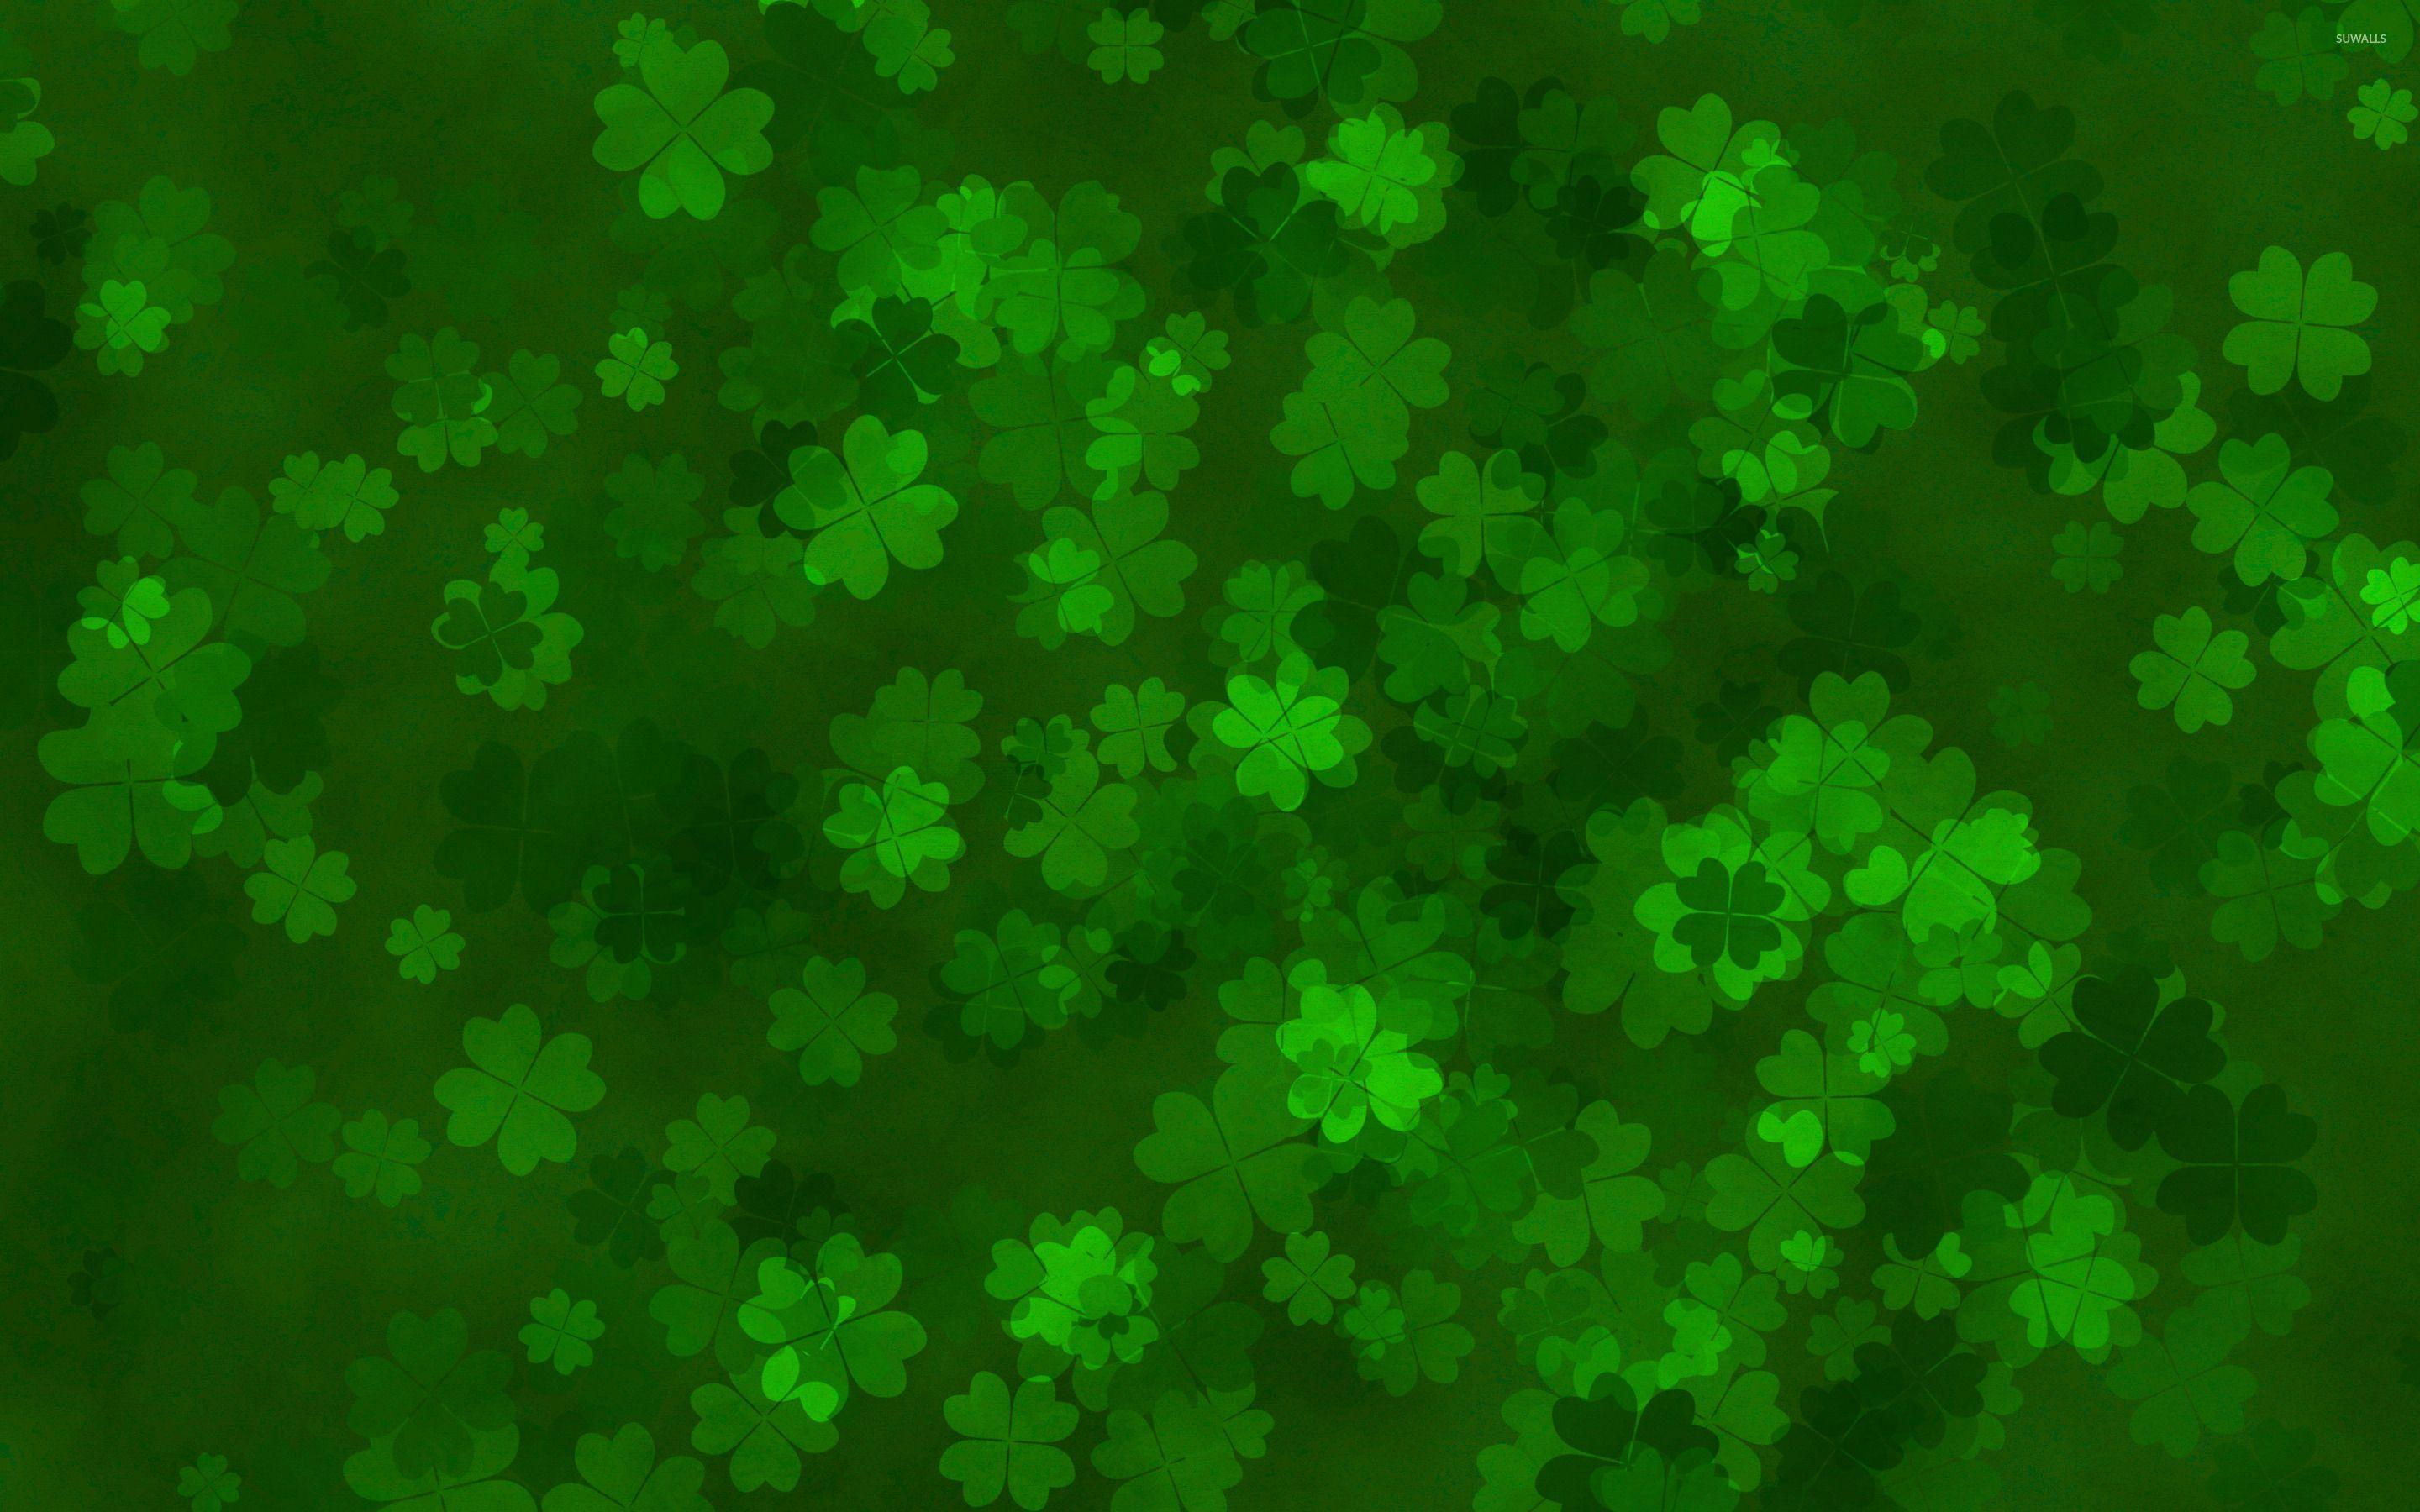 Clovers wallpaper - Holiday wallpapers - #28270